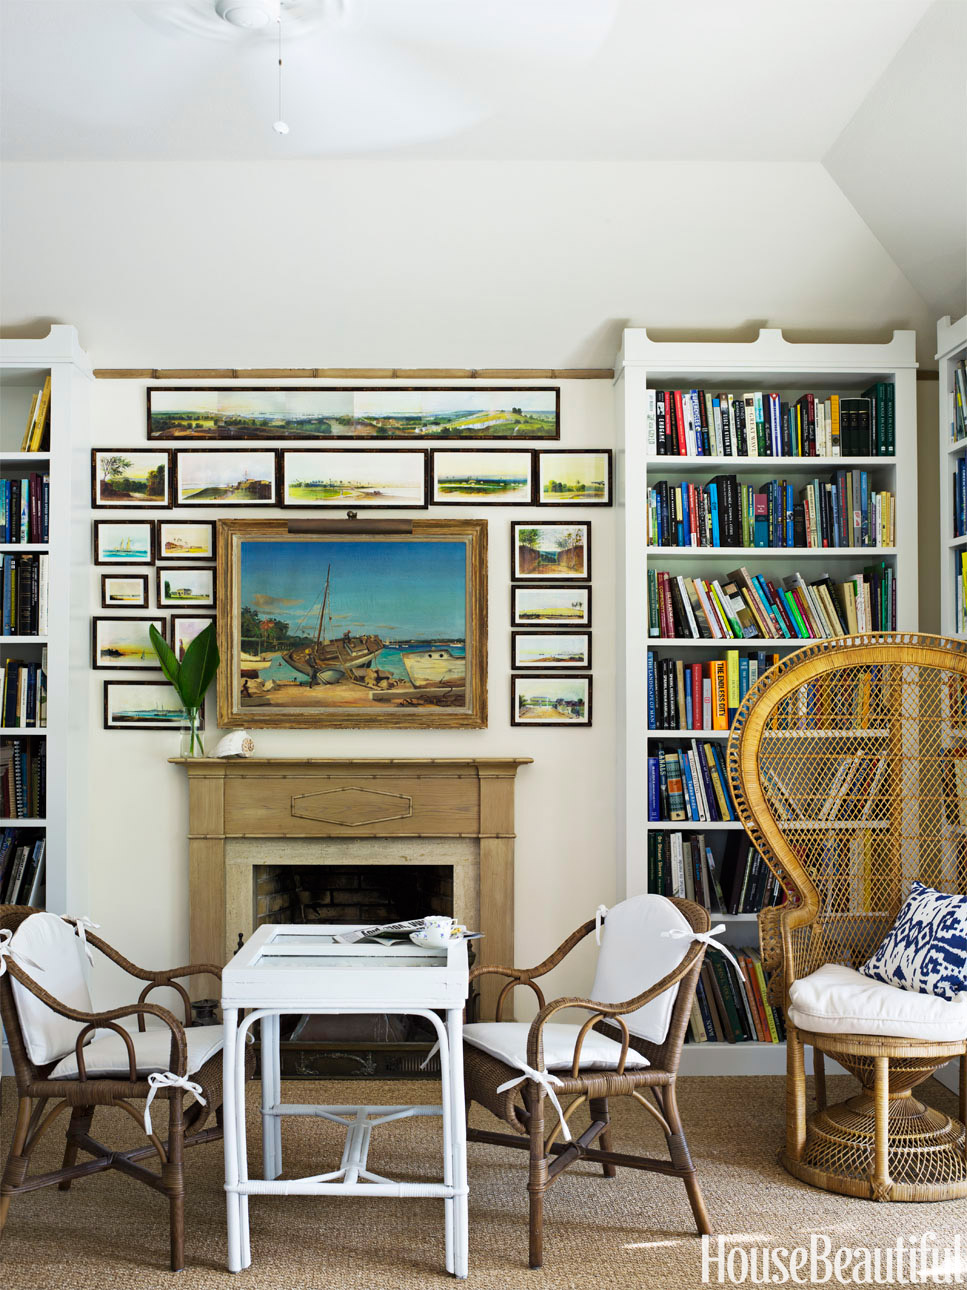 Crowning the library hearth in Amanda Lindroth's Bahamas house are 19th-century watercolors of the Bahamas by Gaspard Le Marchant Tupper. Willow Group rattan chairs are pulled up to a backgammon table.